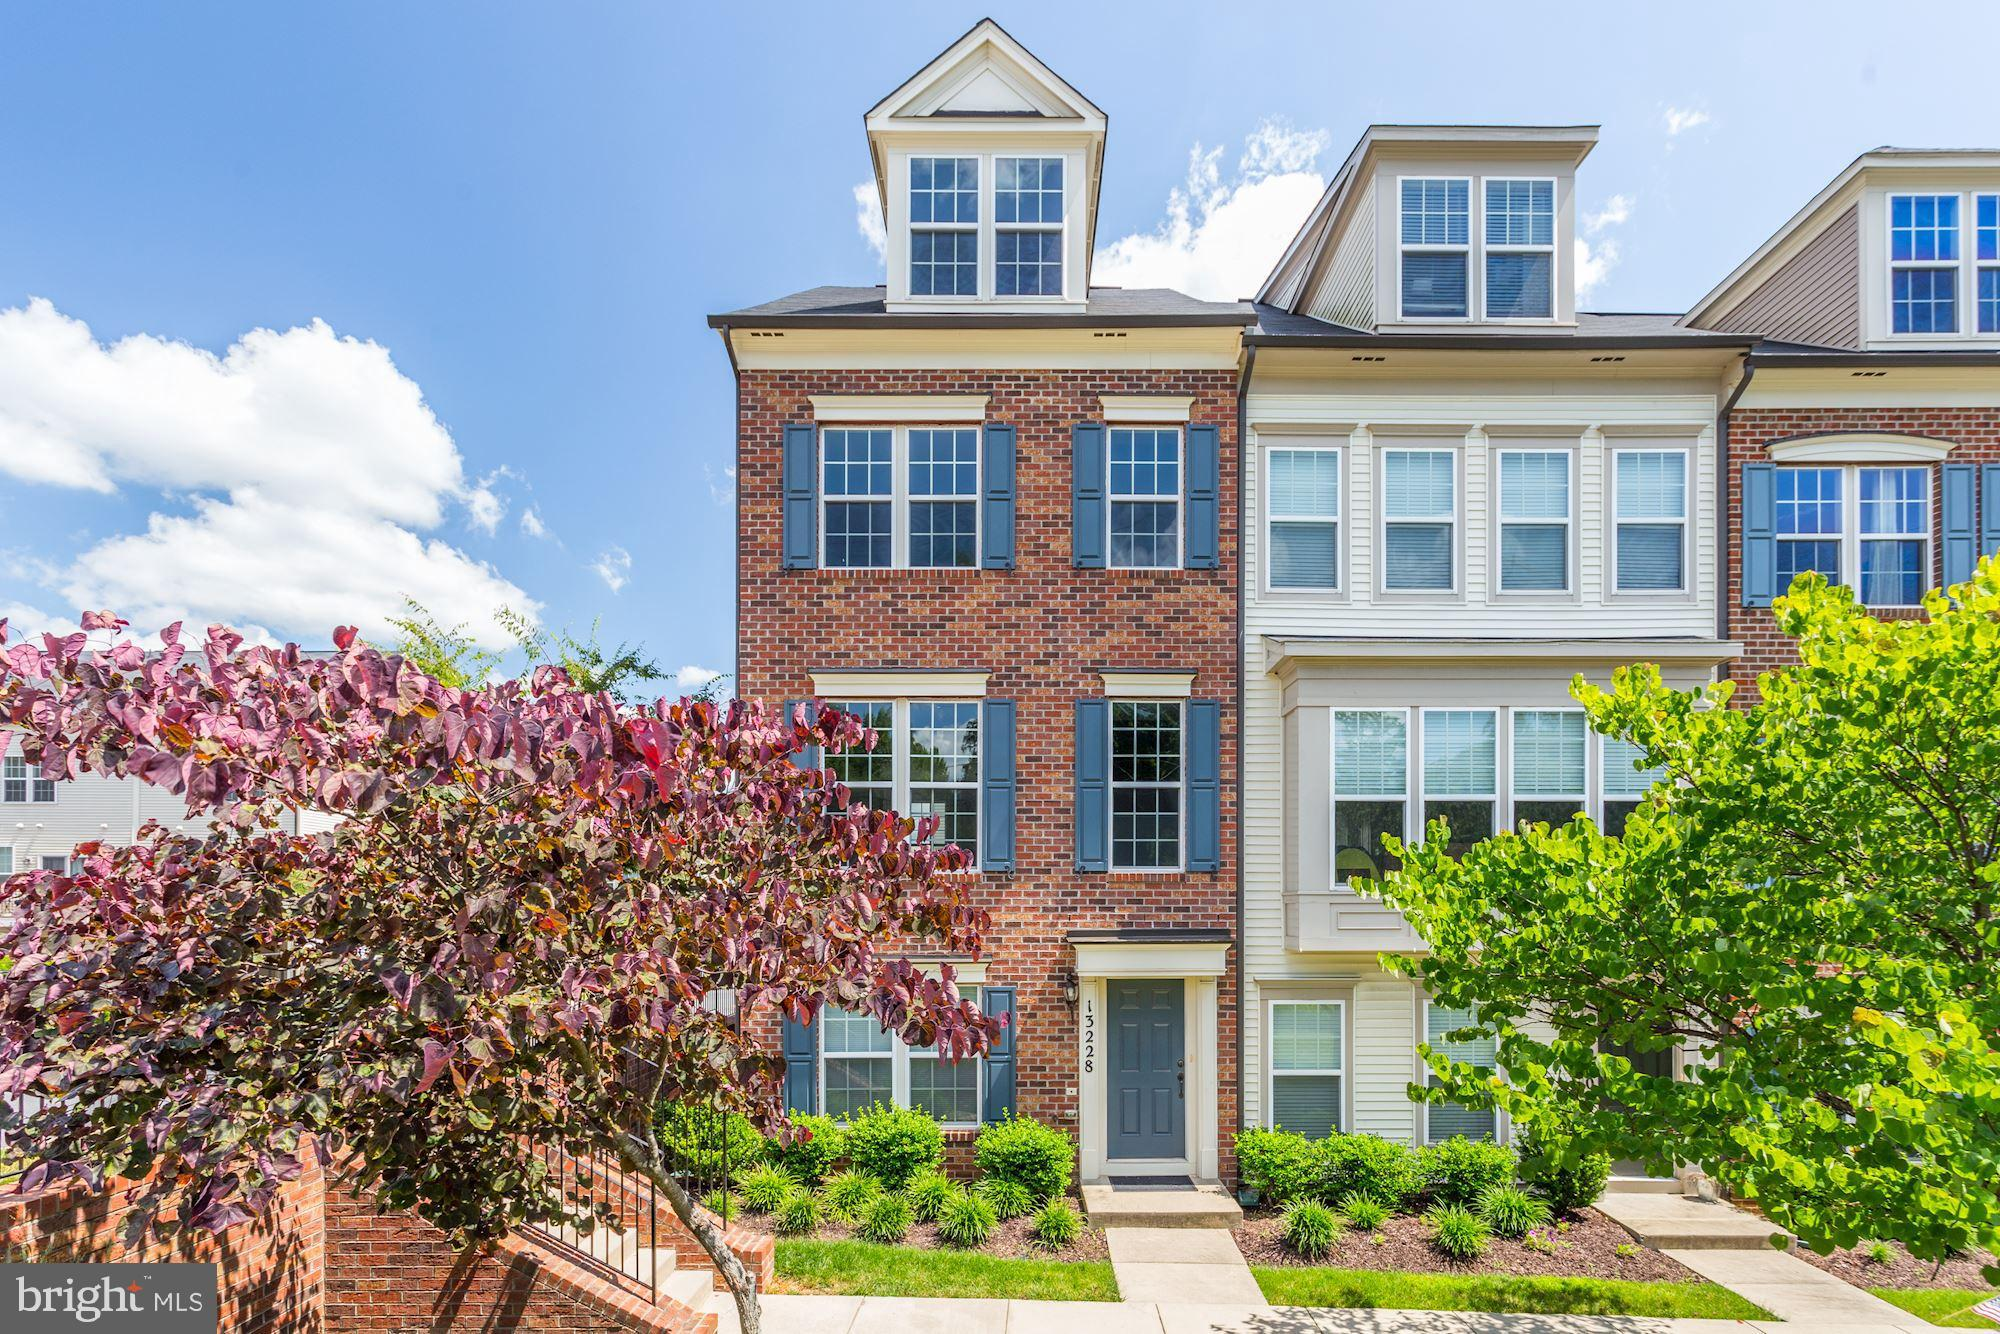 6 years old Luxury Townhome/Condo in Gallery Park, Clarksburg MD! Rarely available, largest model, e